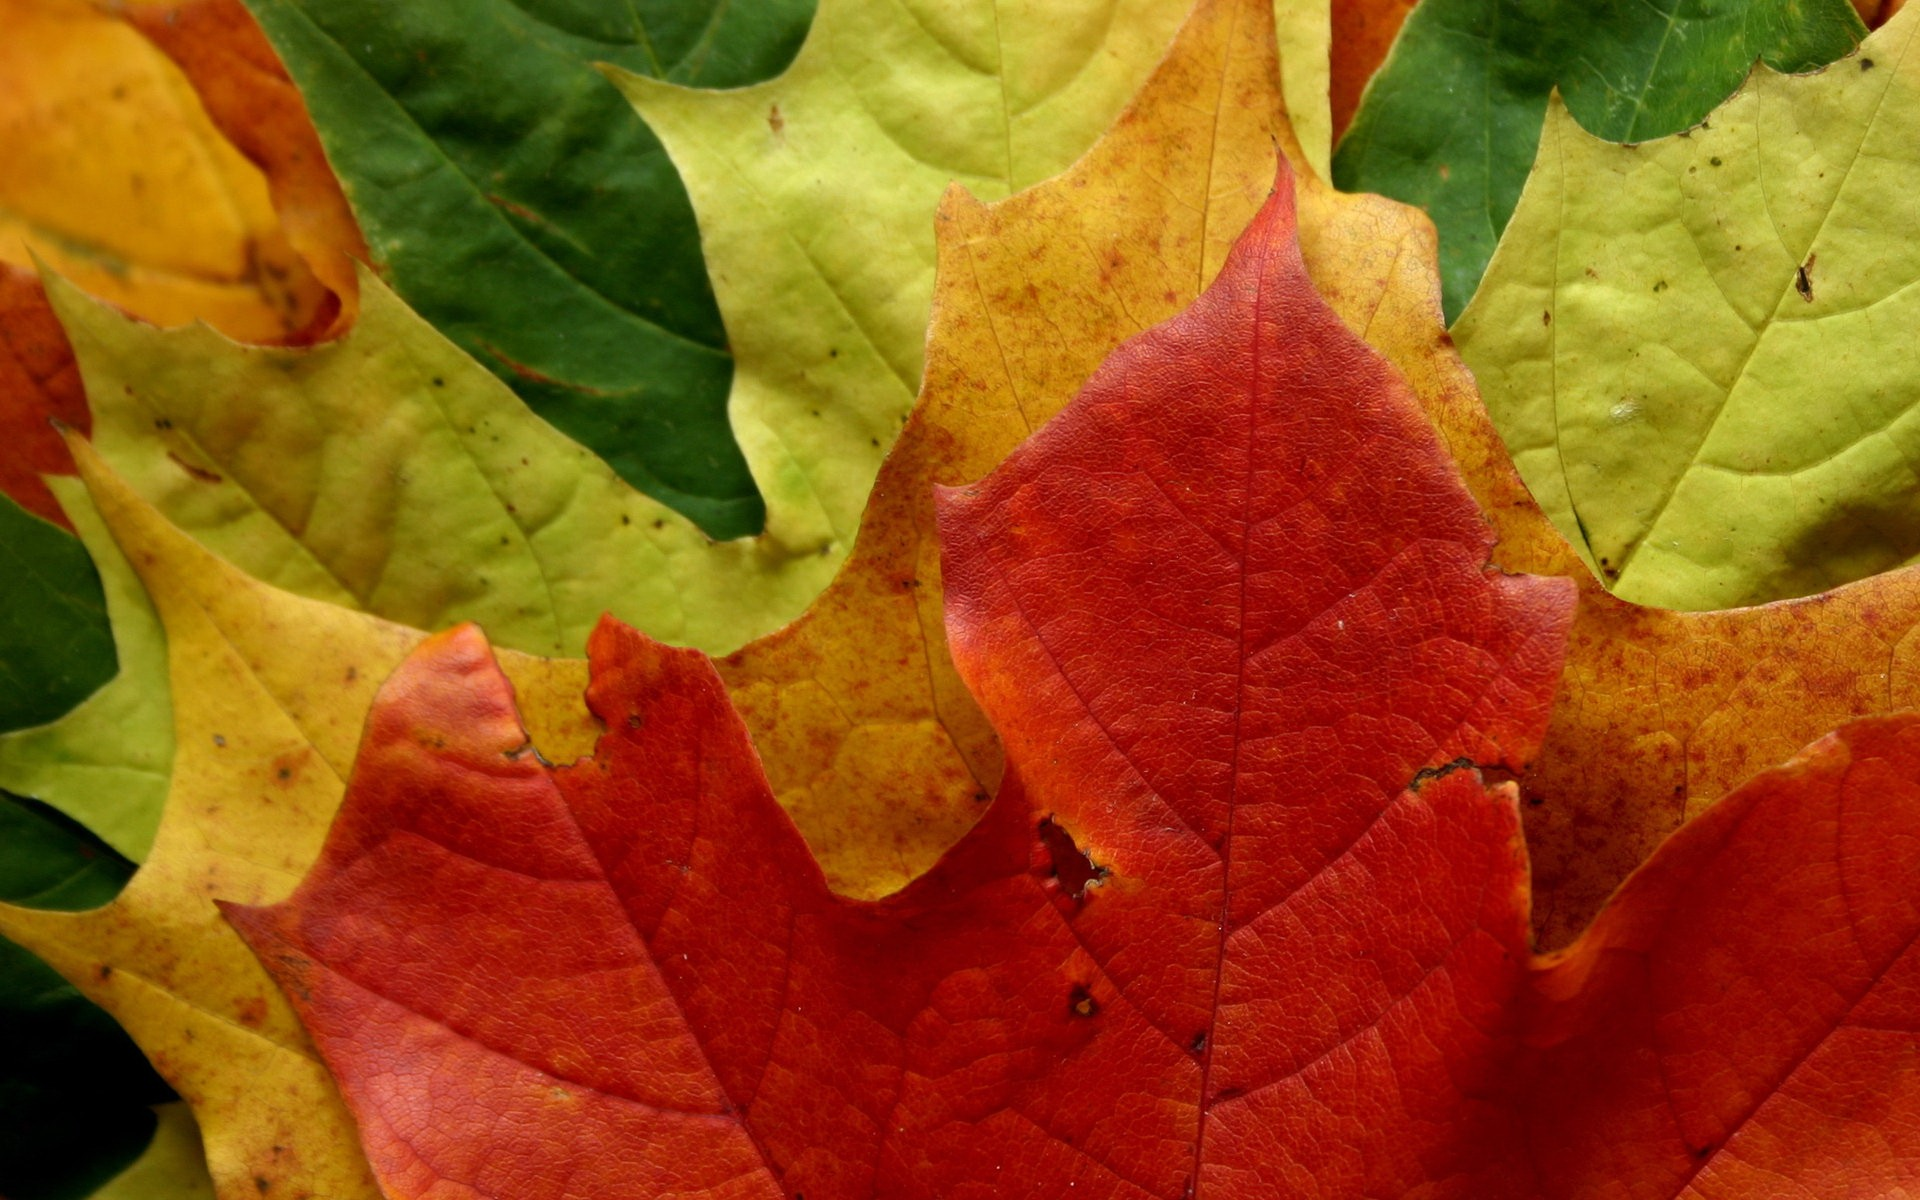 Image Colorful Autumn Leaves Wallpapers And Stock Photos